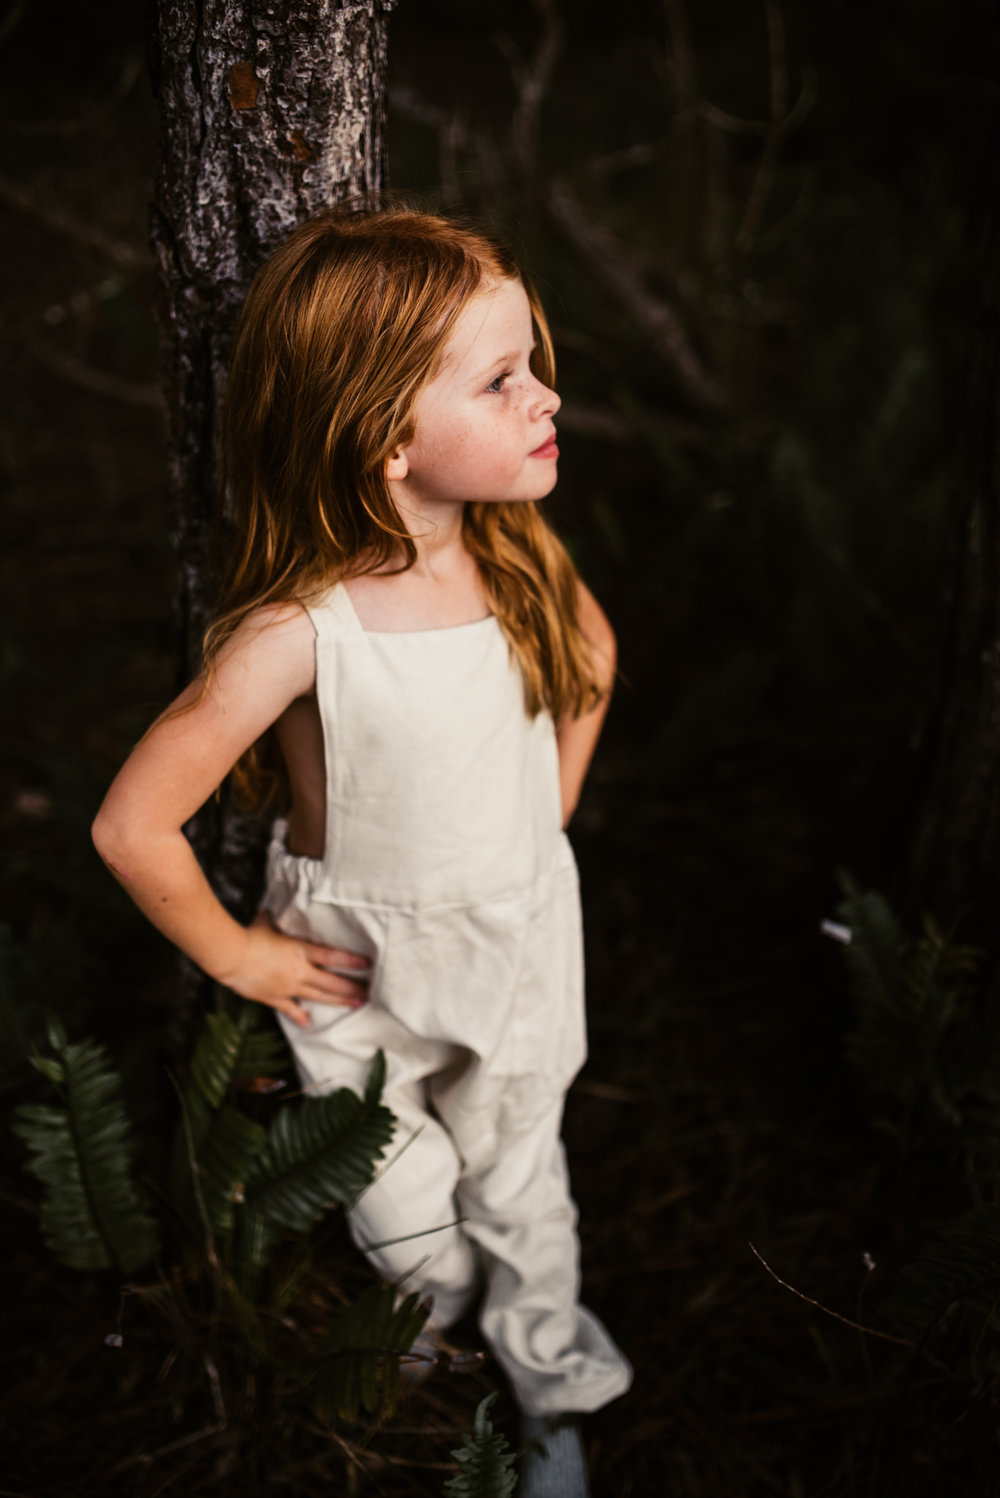 twyla jones photography - treasure coast florida - childrens adventure clothing commercial shoot--47.jpg